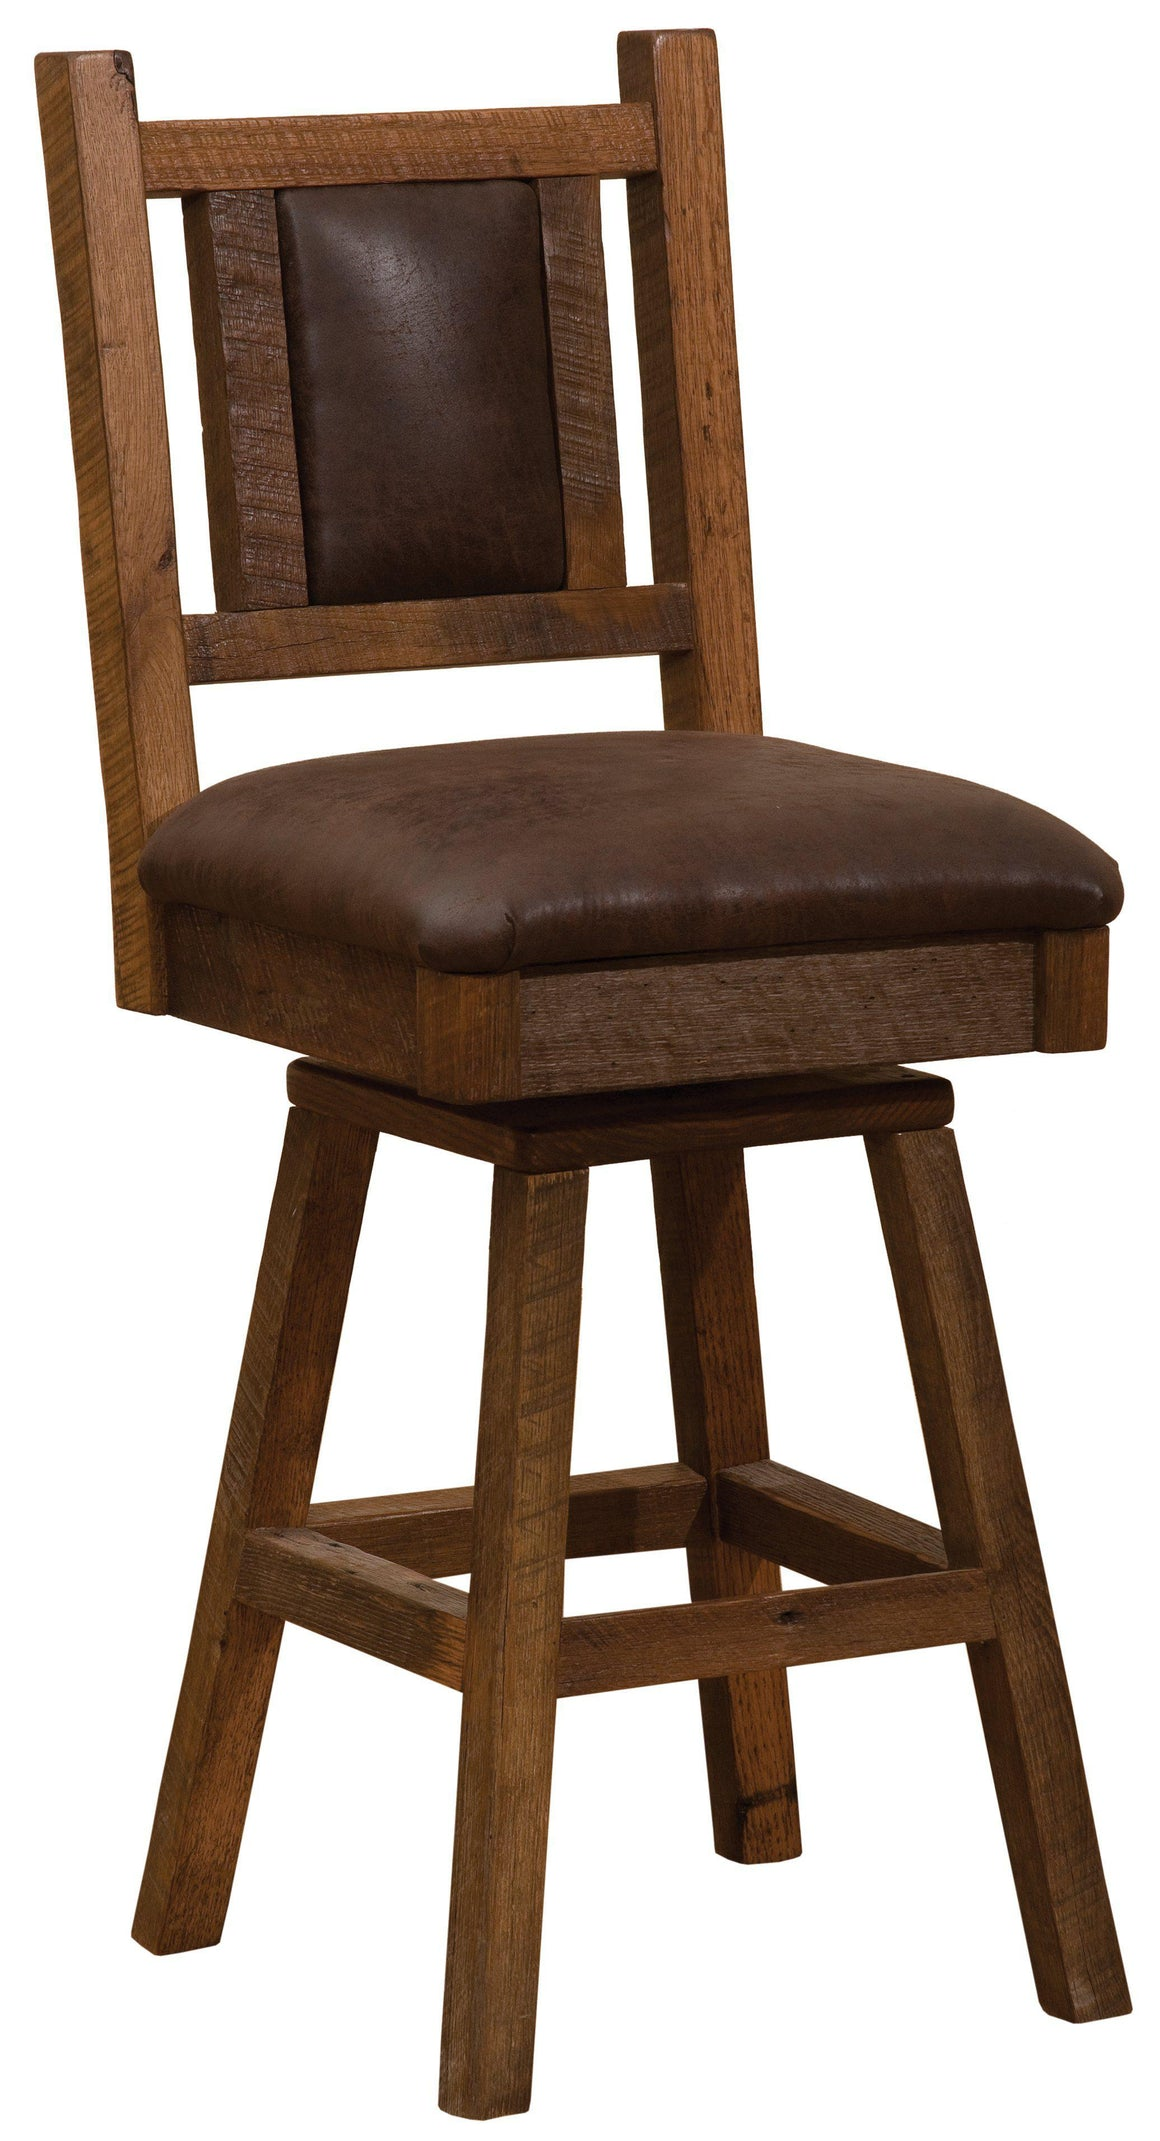 "Barnwood Swivel Upholstered Counter Stool with Back - 24"" Seat Height-Rustic Deco Incorporated"